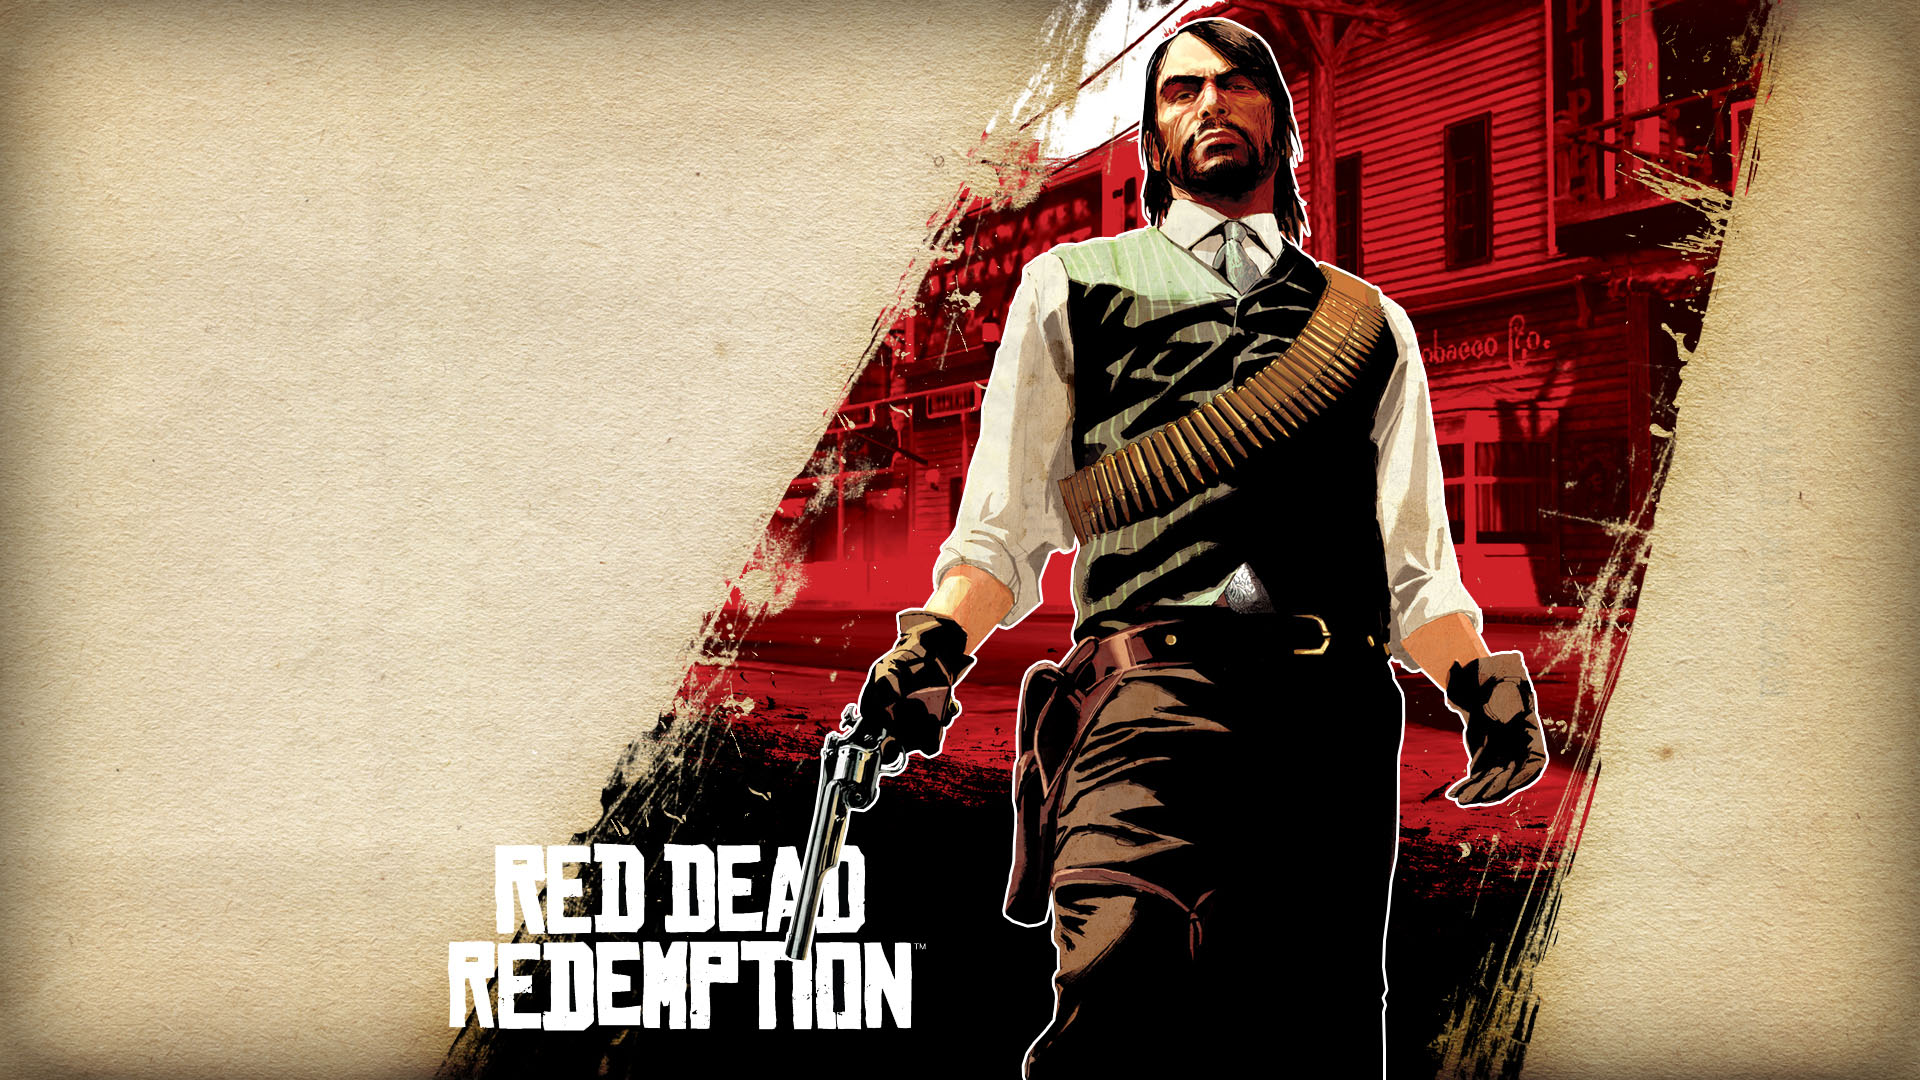 red dead redemption wallpaper background